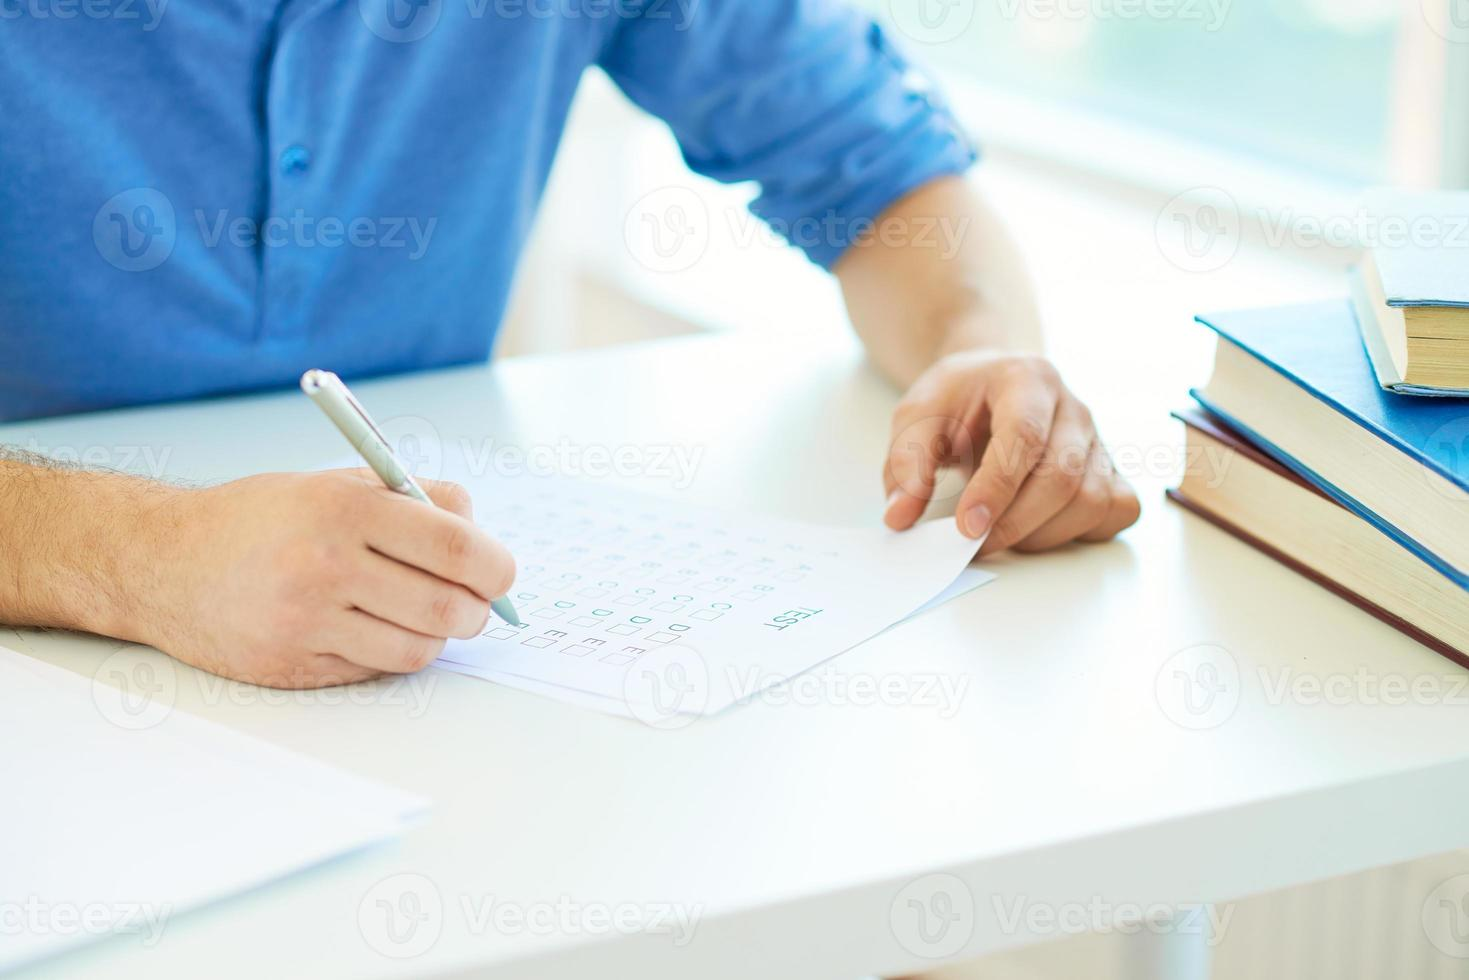 Writing course test photo